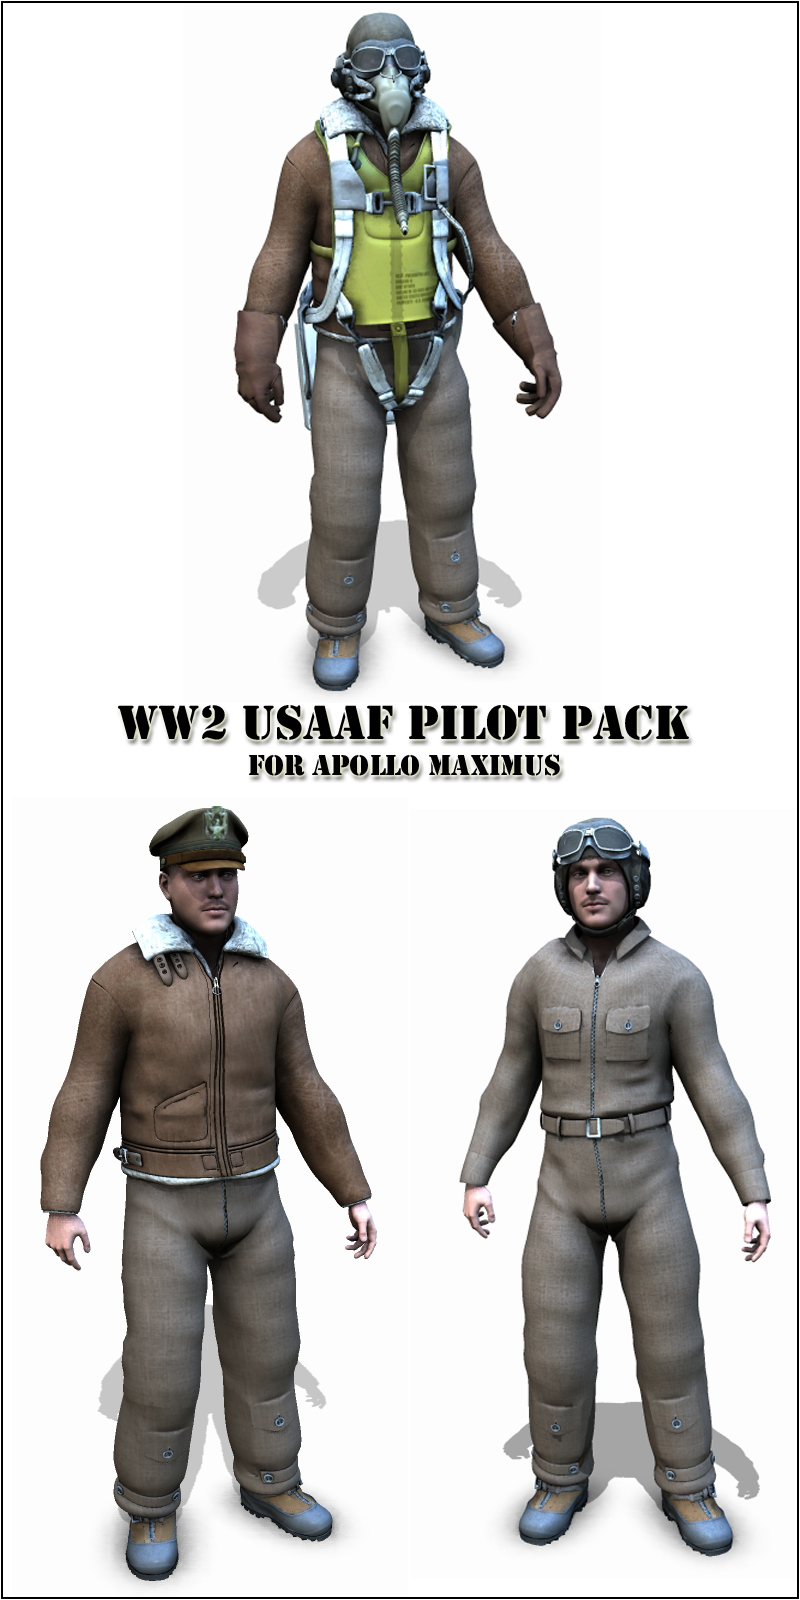 WW2 USAAF pilot pack - Extended License